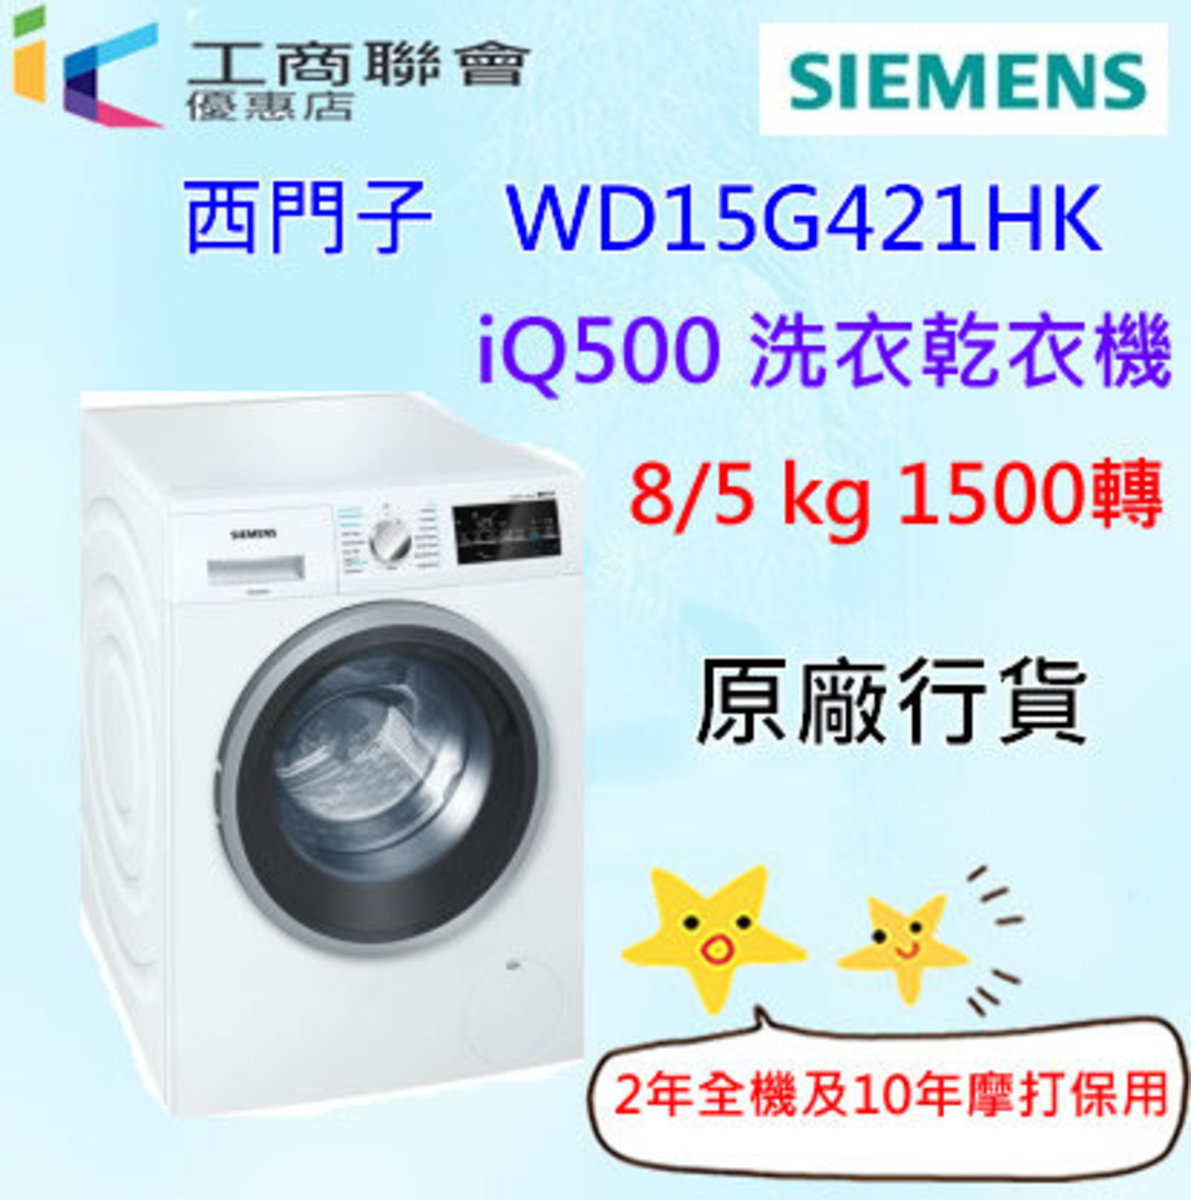 WD15G421HK iQ500 washer-dryer 8/5 kg 1500 turn